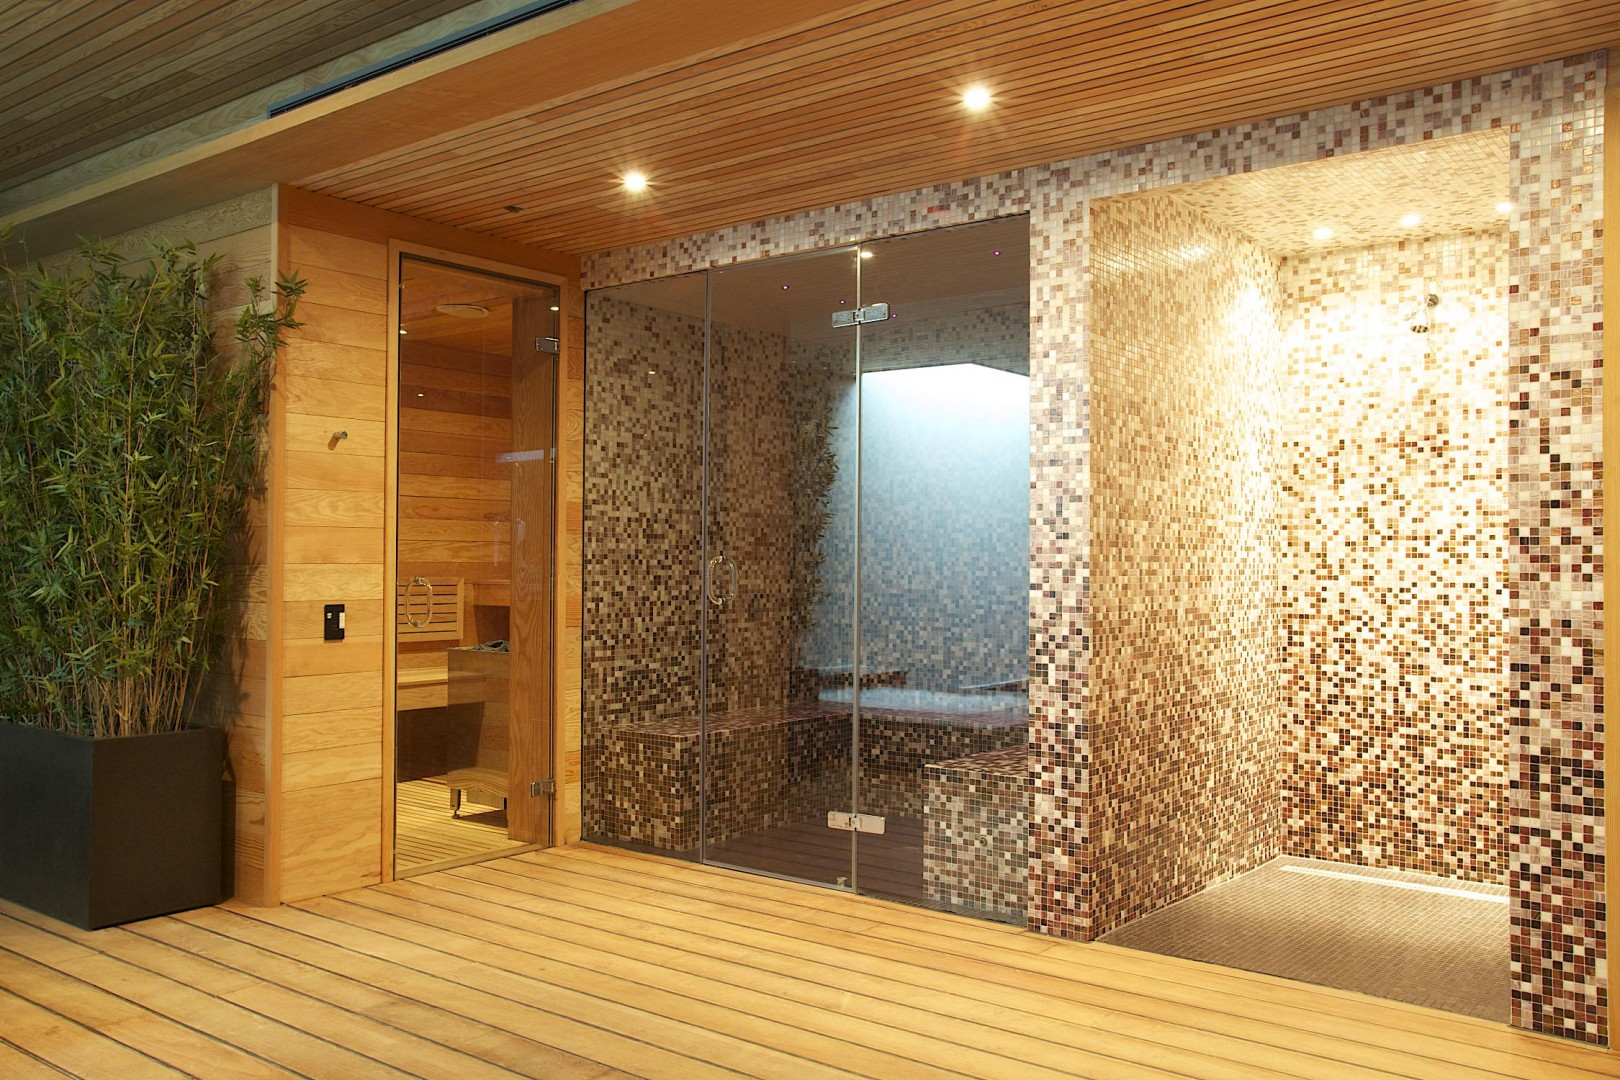 Relax And Unwind In The Warmth Of The Saunas And Steam Rooms Available In  Some Of Our Clubs. Great For Increasing Your Circulation And Detoxifying  Your Skin ...